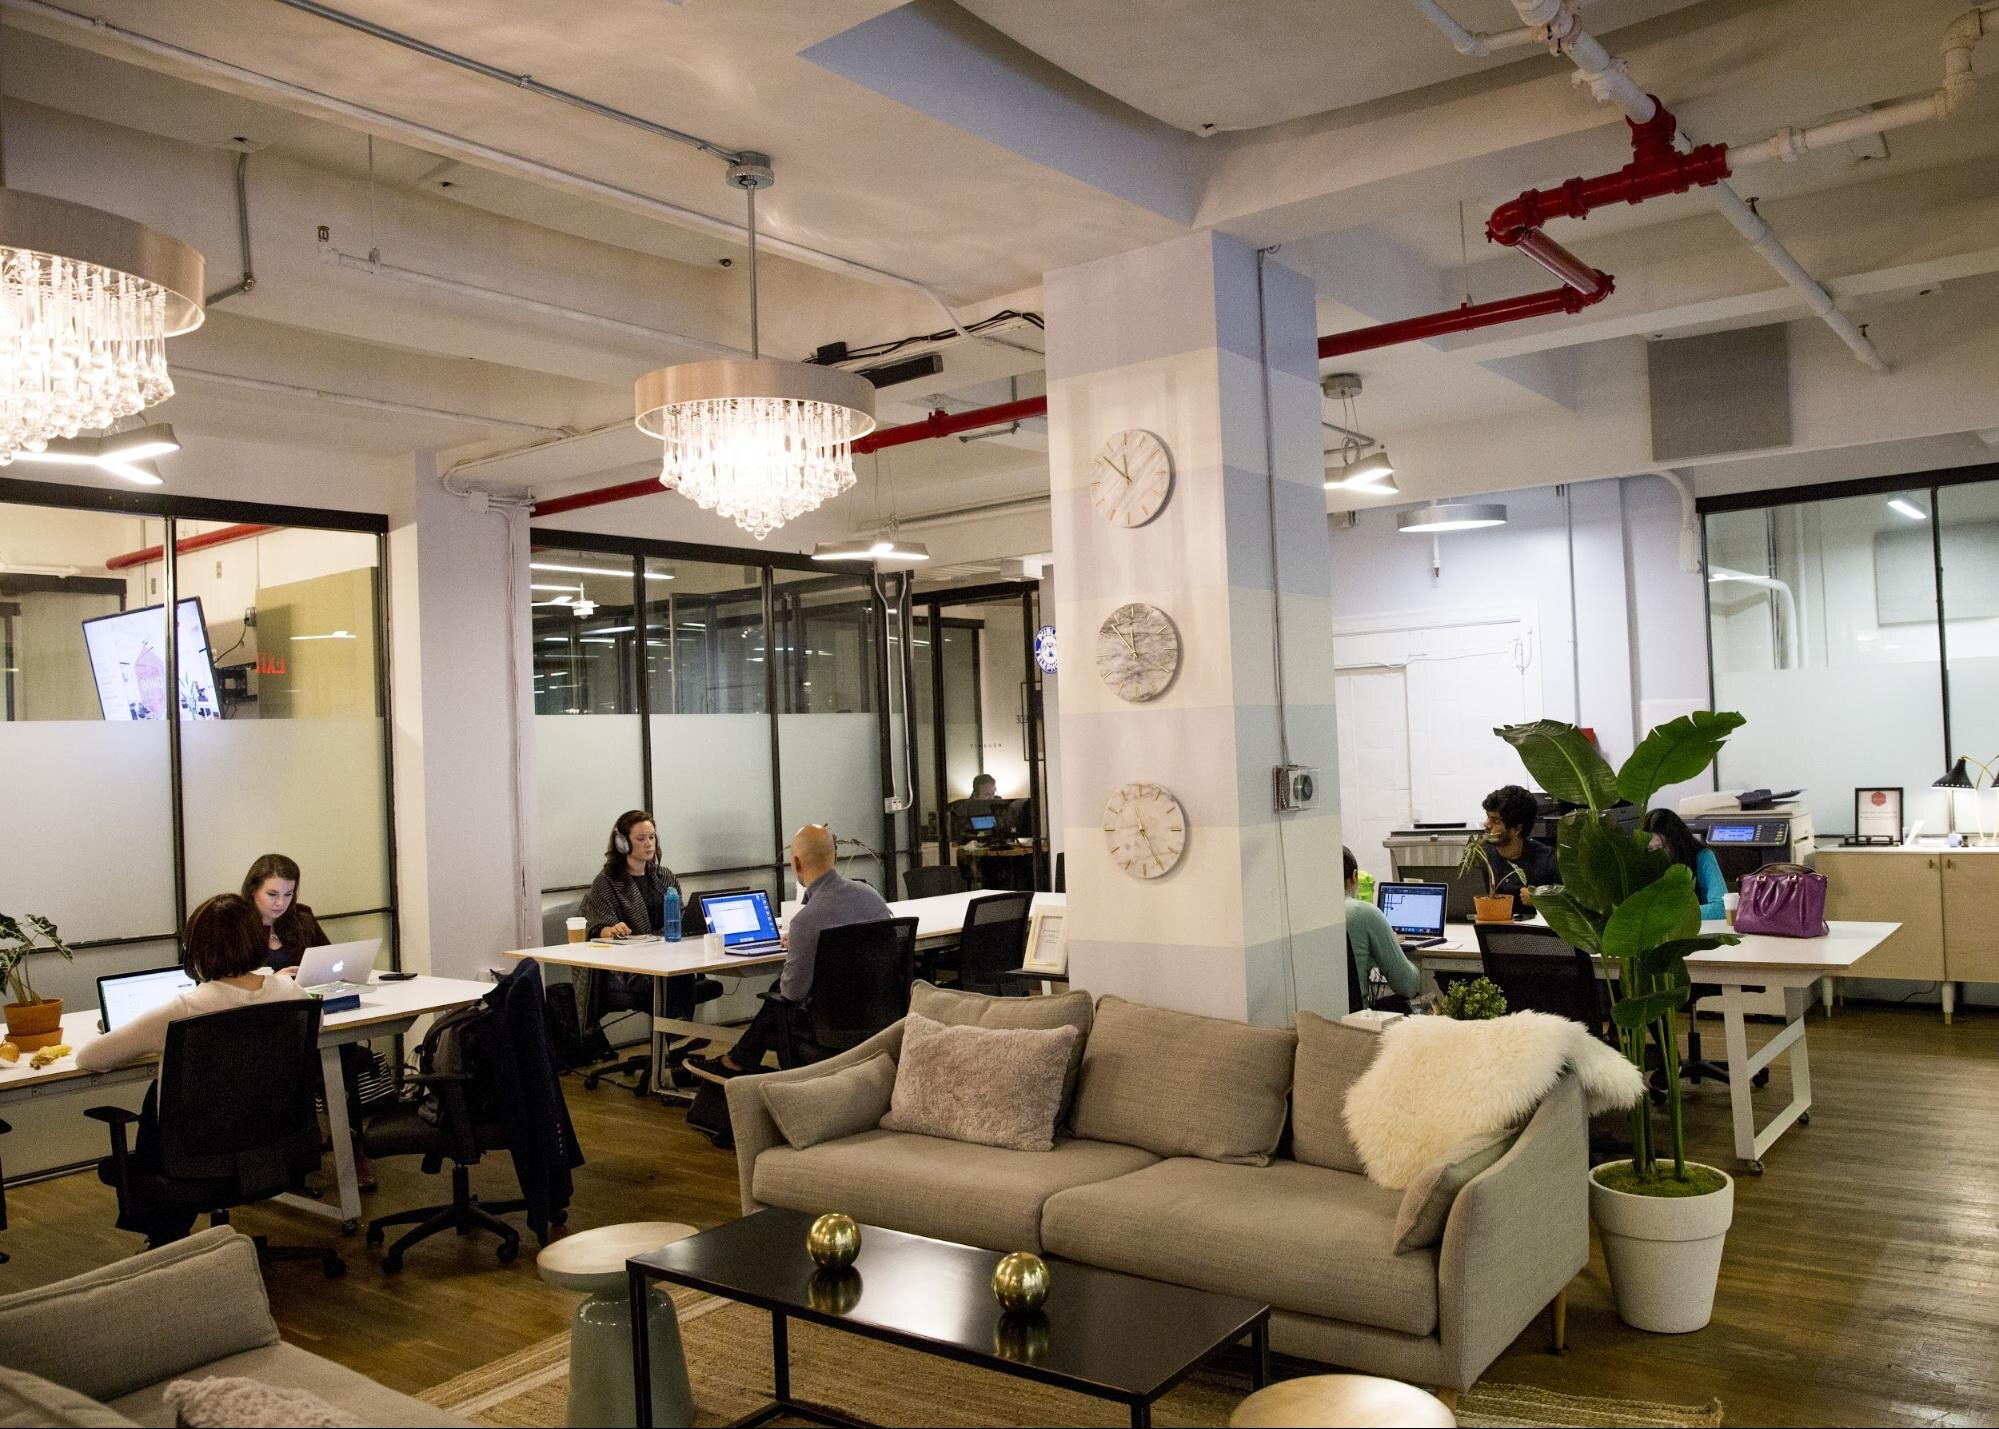 Shared desks, sofas, and tables in a gorgeous office